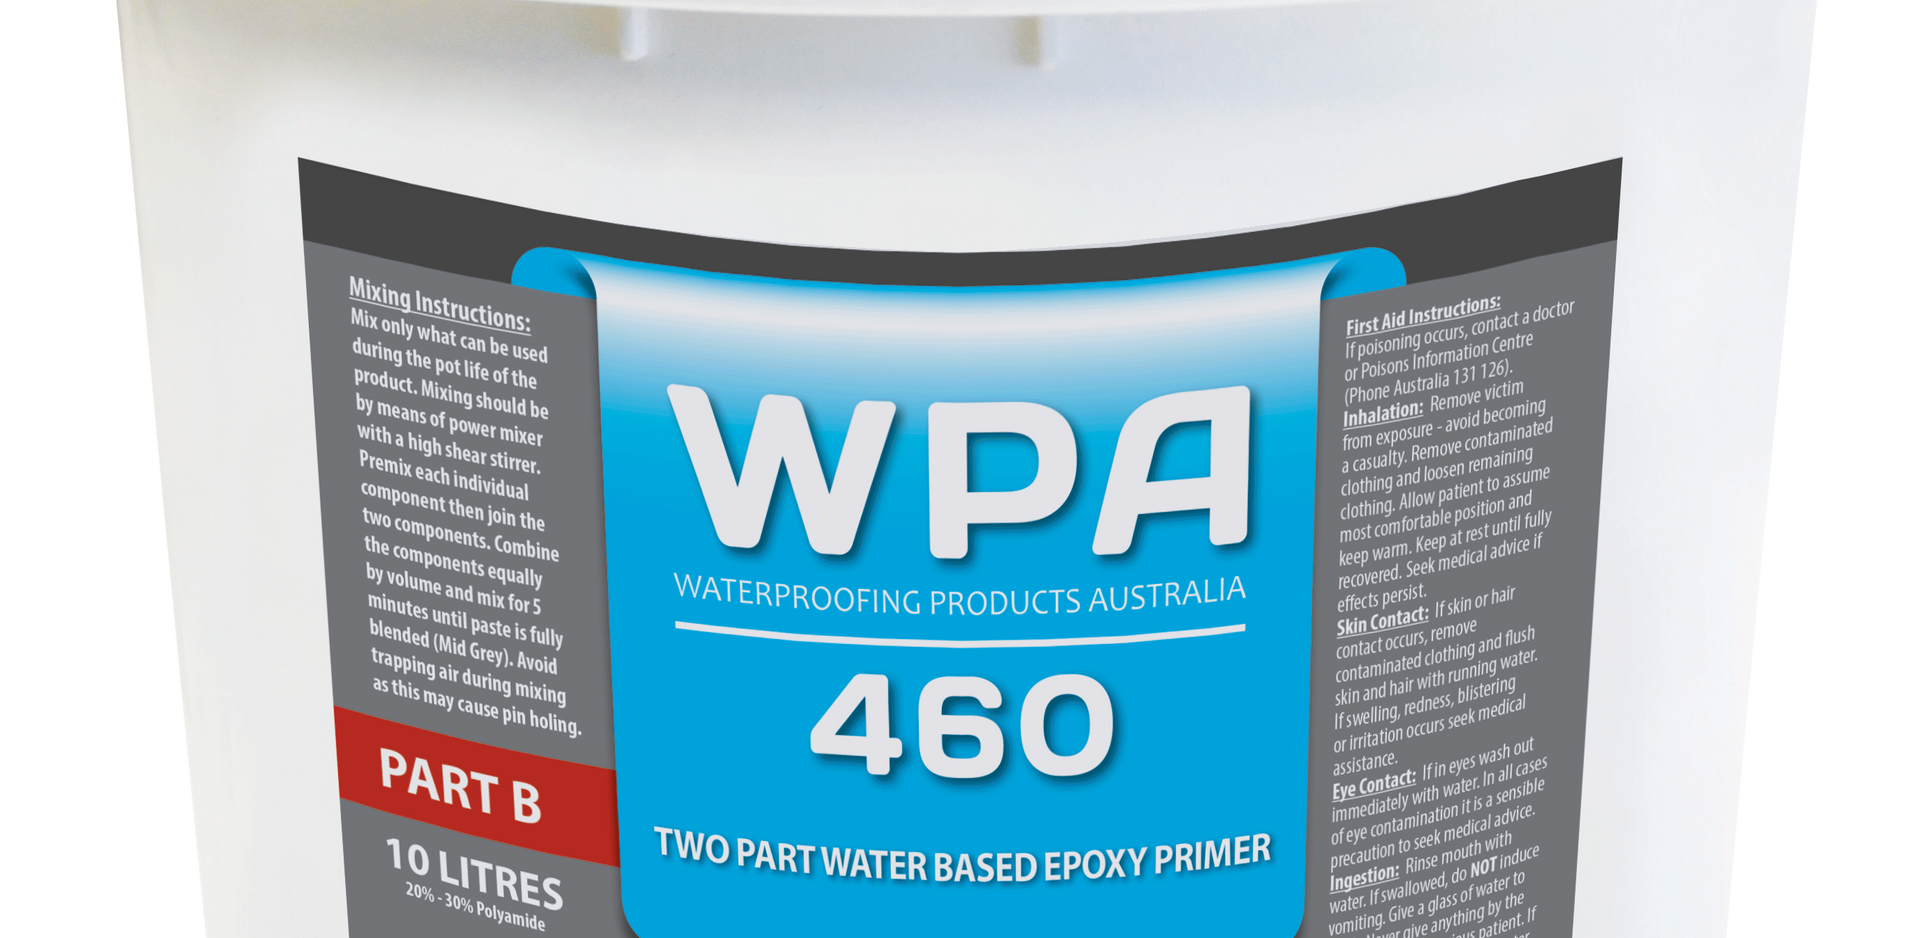 WPA-460-Two-Part-Water-Based-Epoxy-Primer-PartB.png